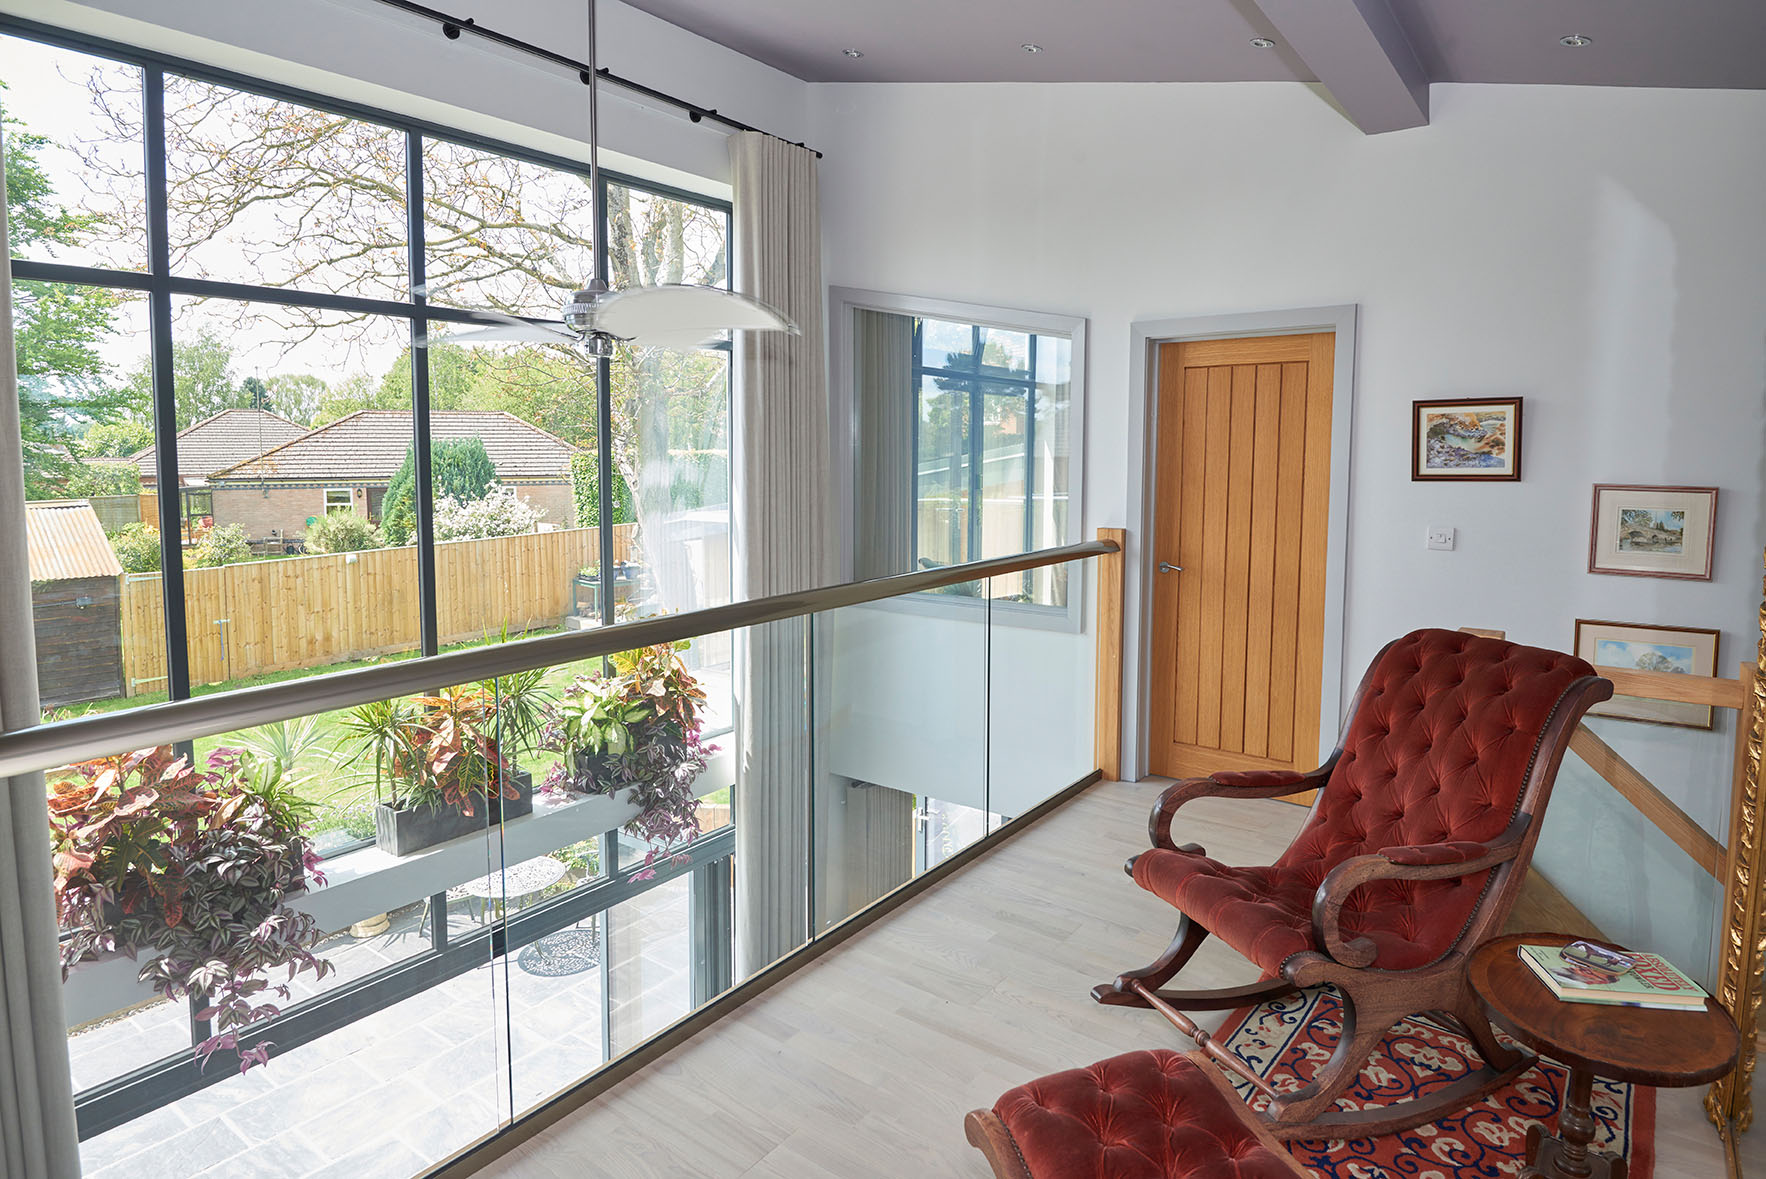 Contemporary-Glass-Hous-Wiltshire07.jpg